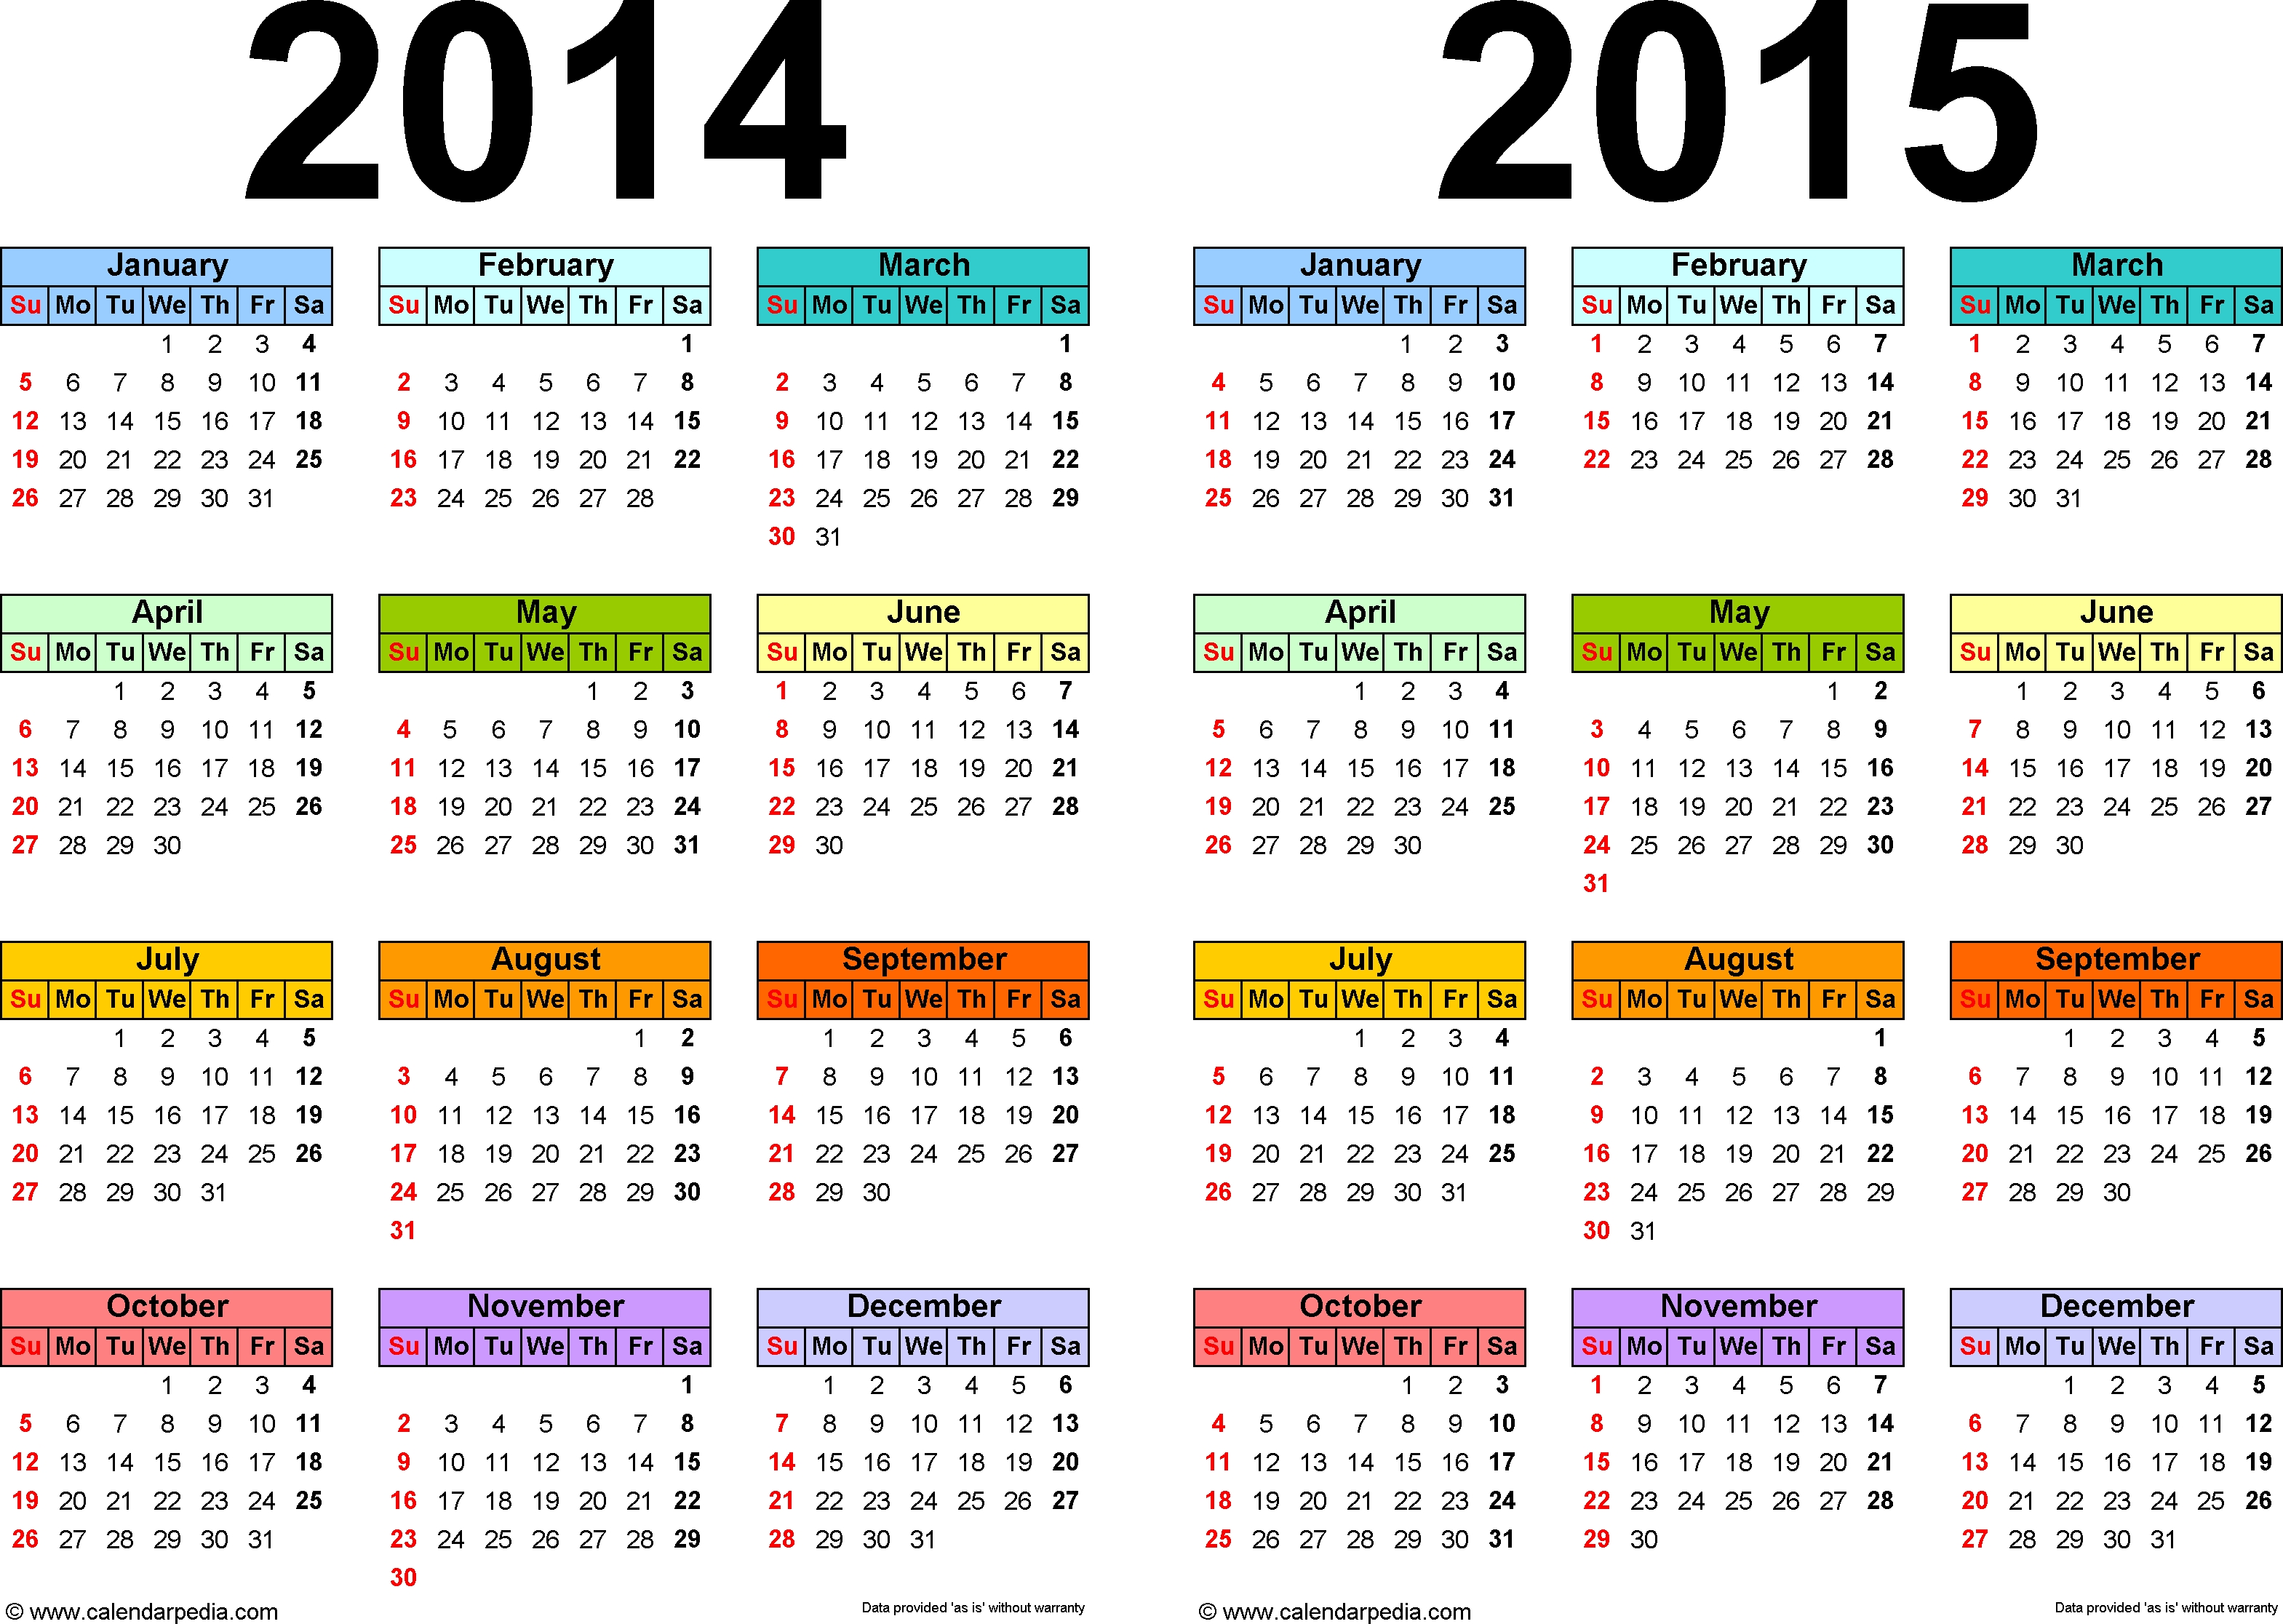 2014-2015 Calendar - Free Printable Two-Year Pdf Calendars  Printable Yearly Calendar 2014 2015